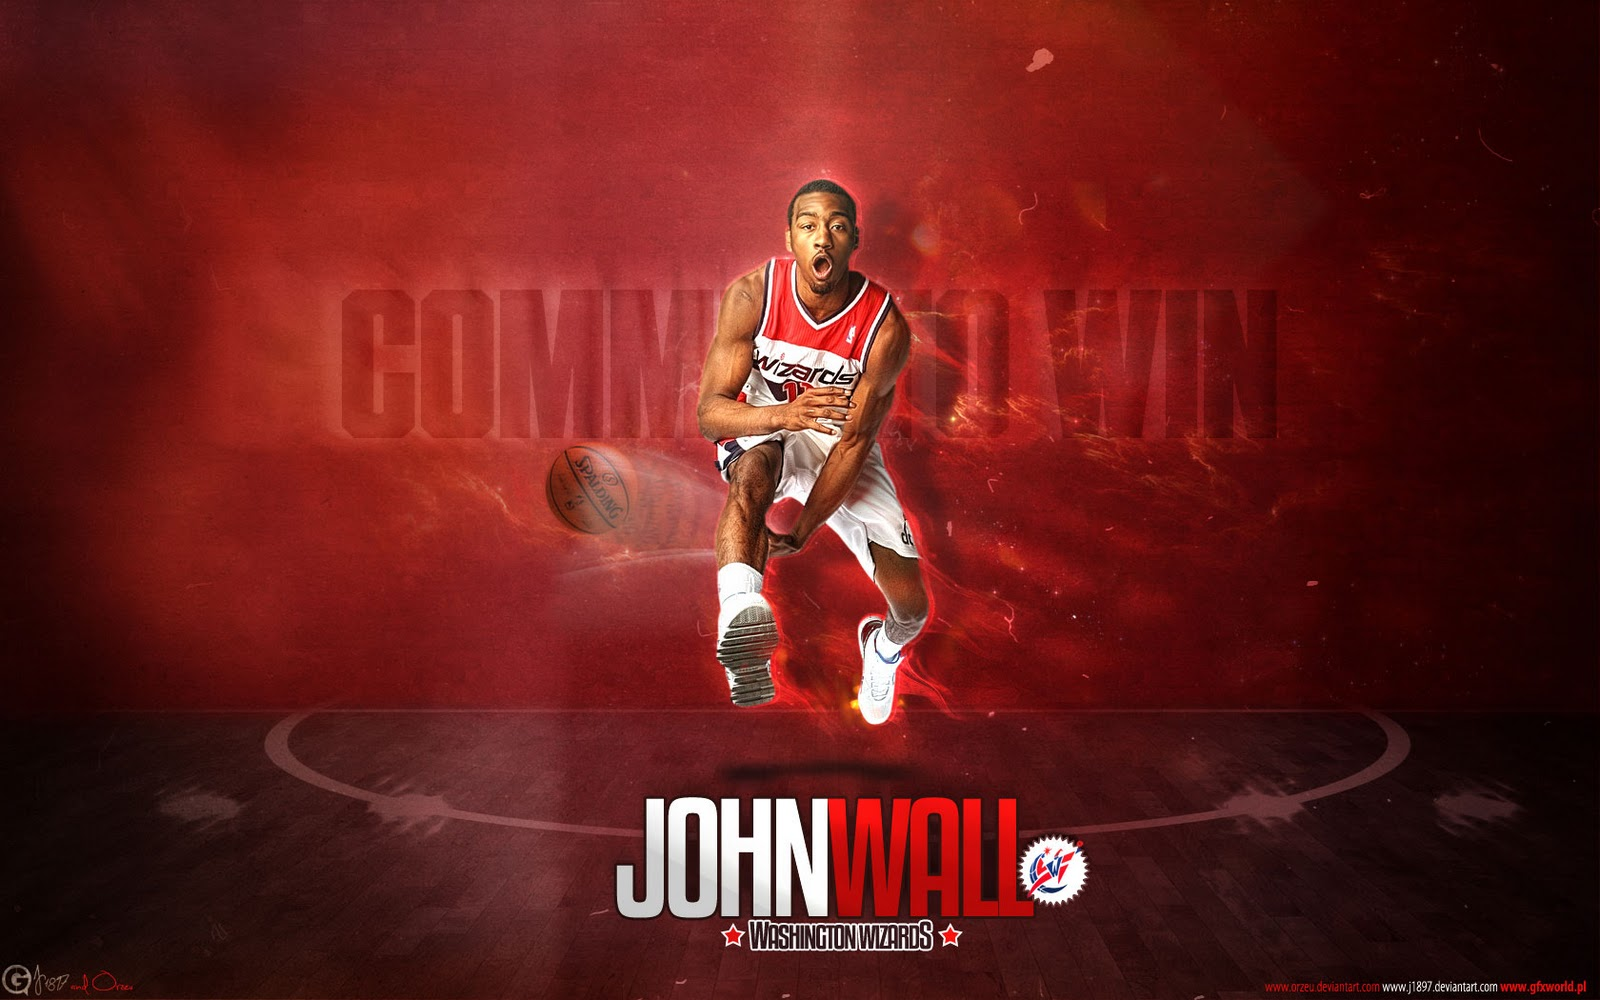 Washington Wizards Wallpapers NBA Wallpapers Basket Ball Wallpapers 1600x1000